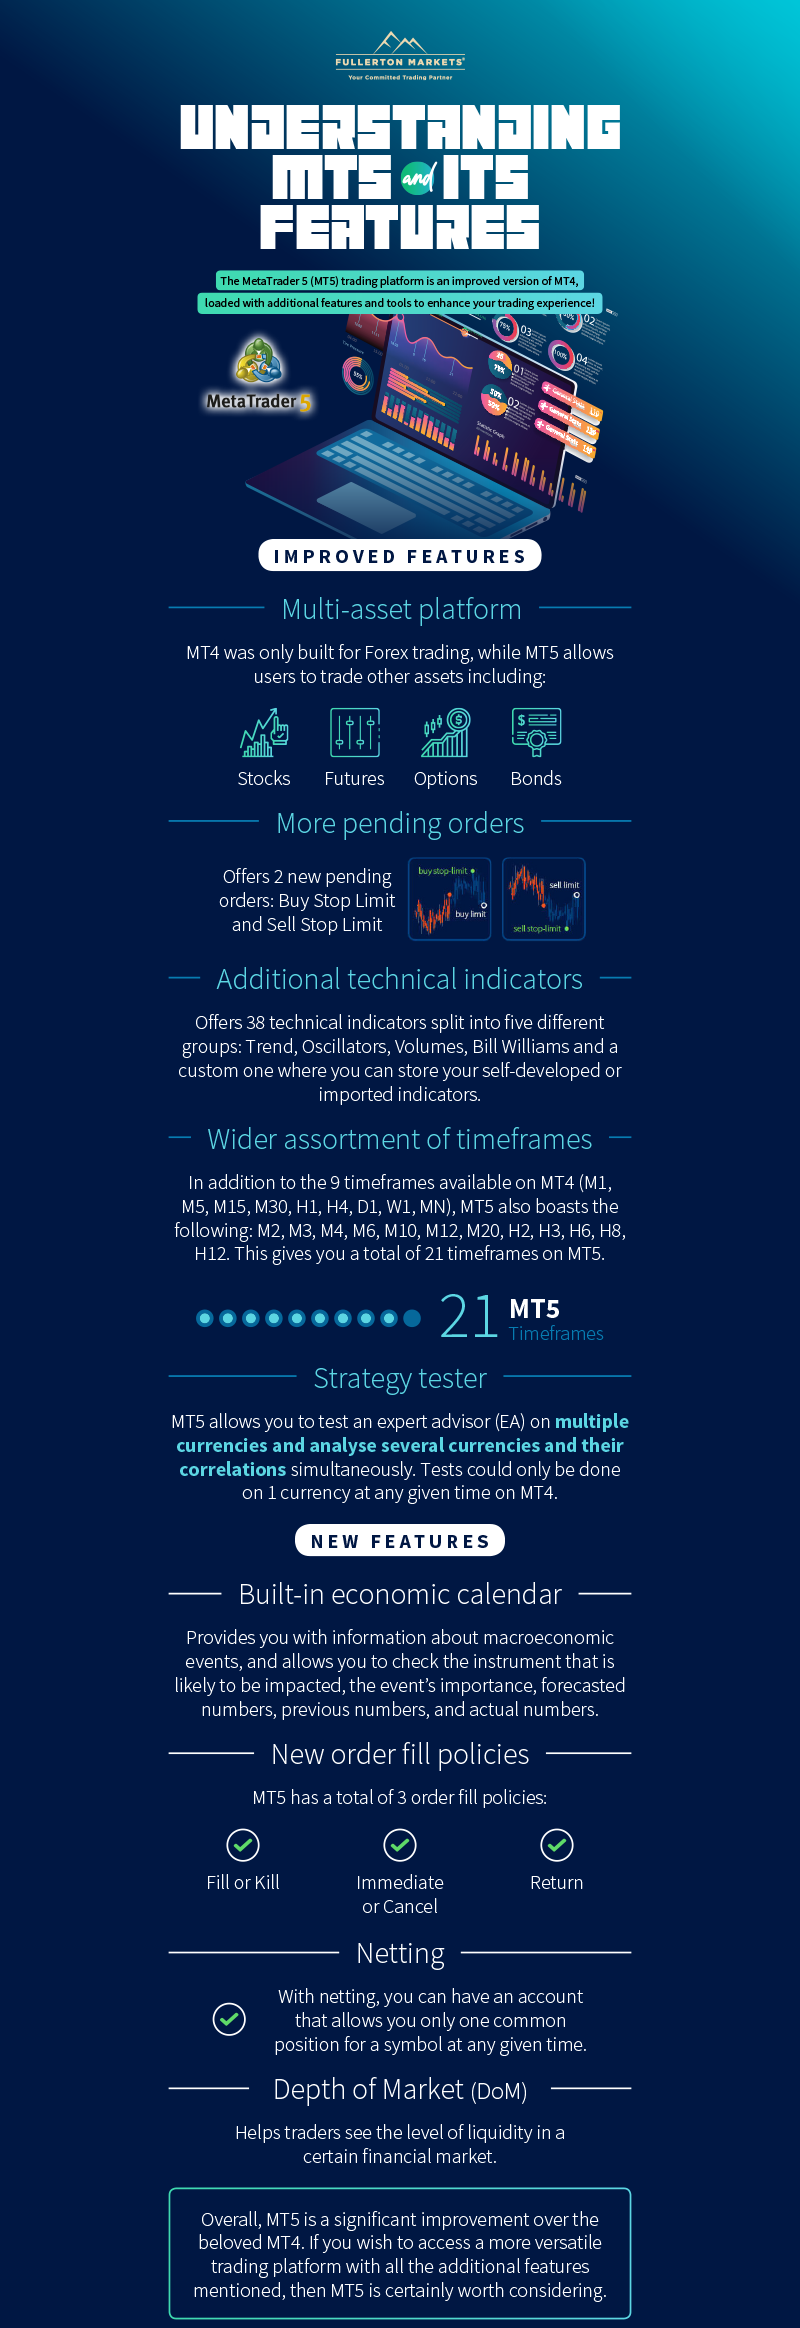 Infographic of MT5 and its features